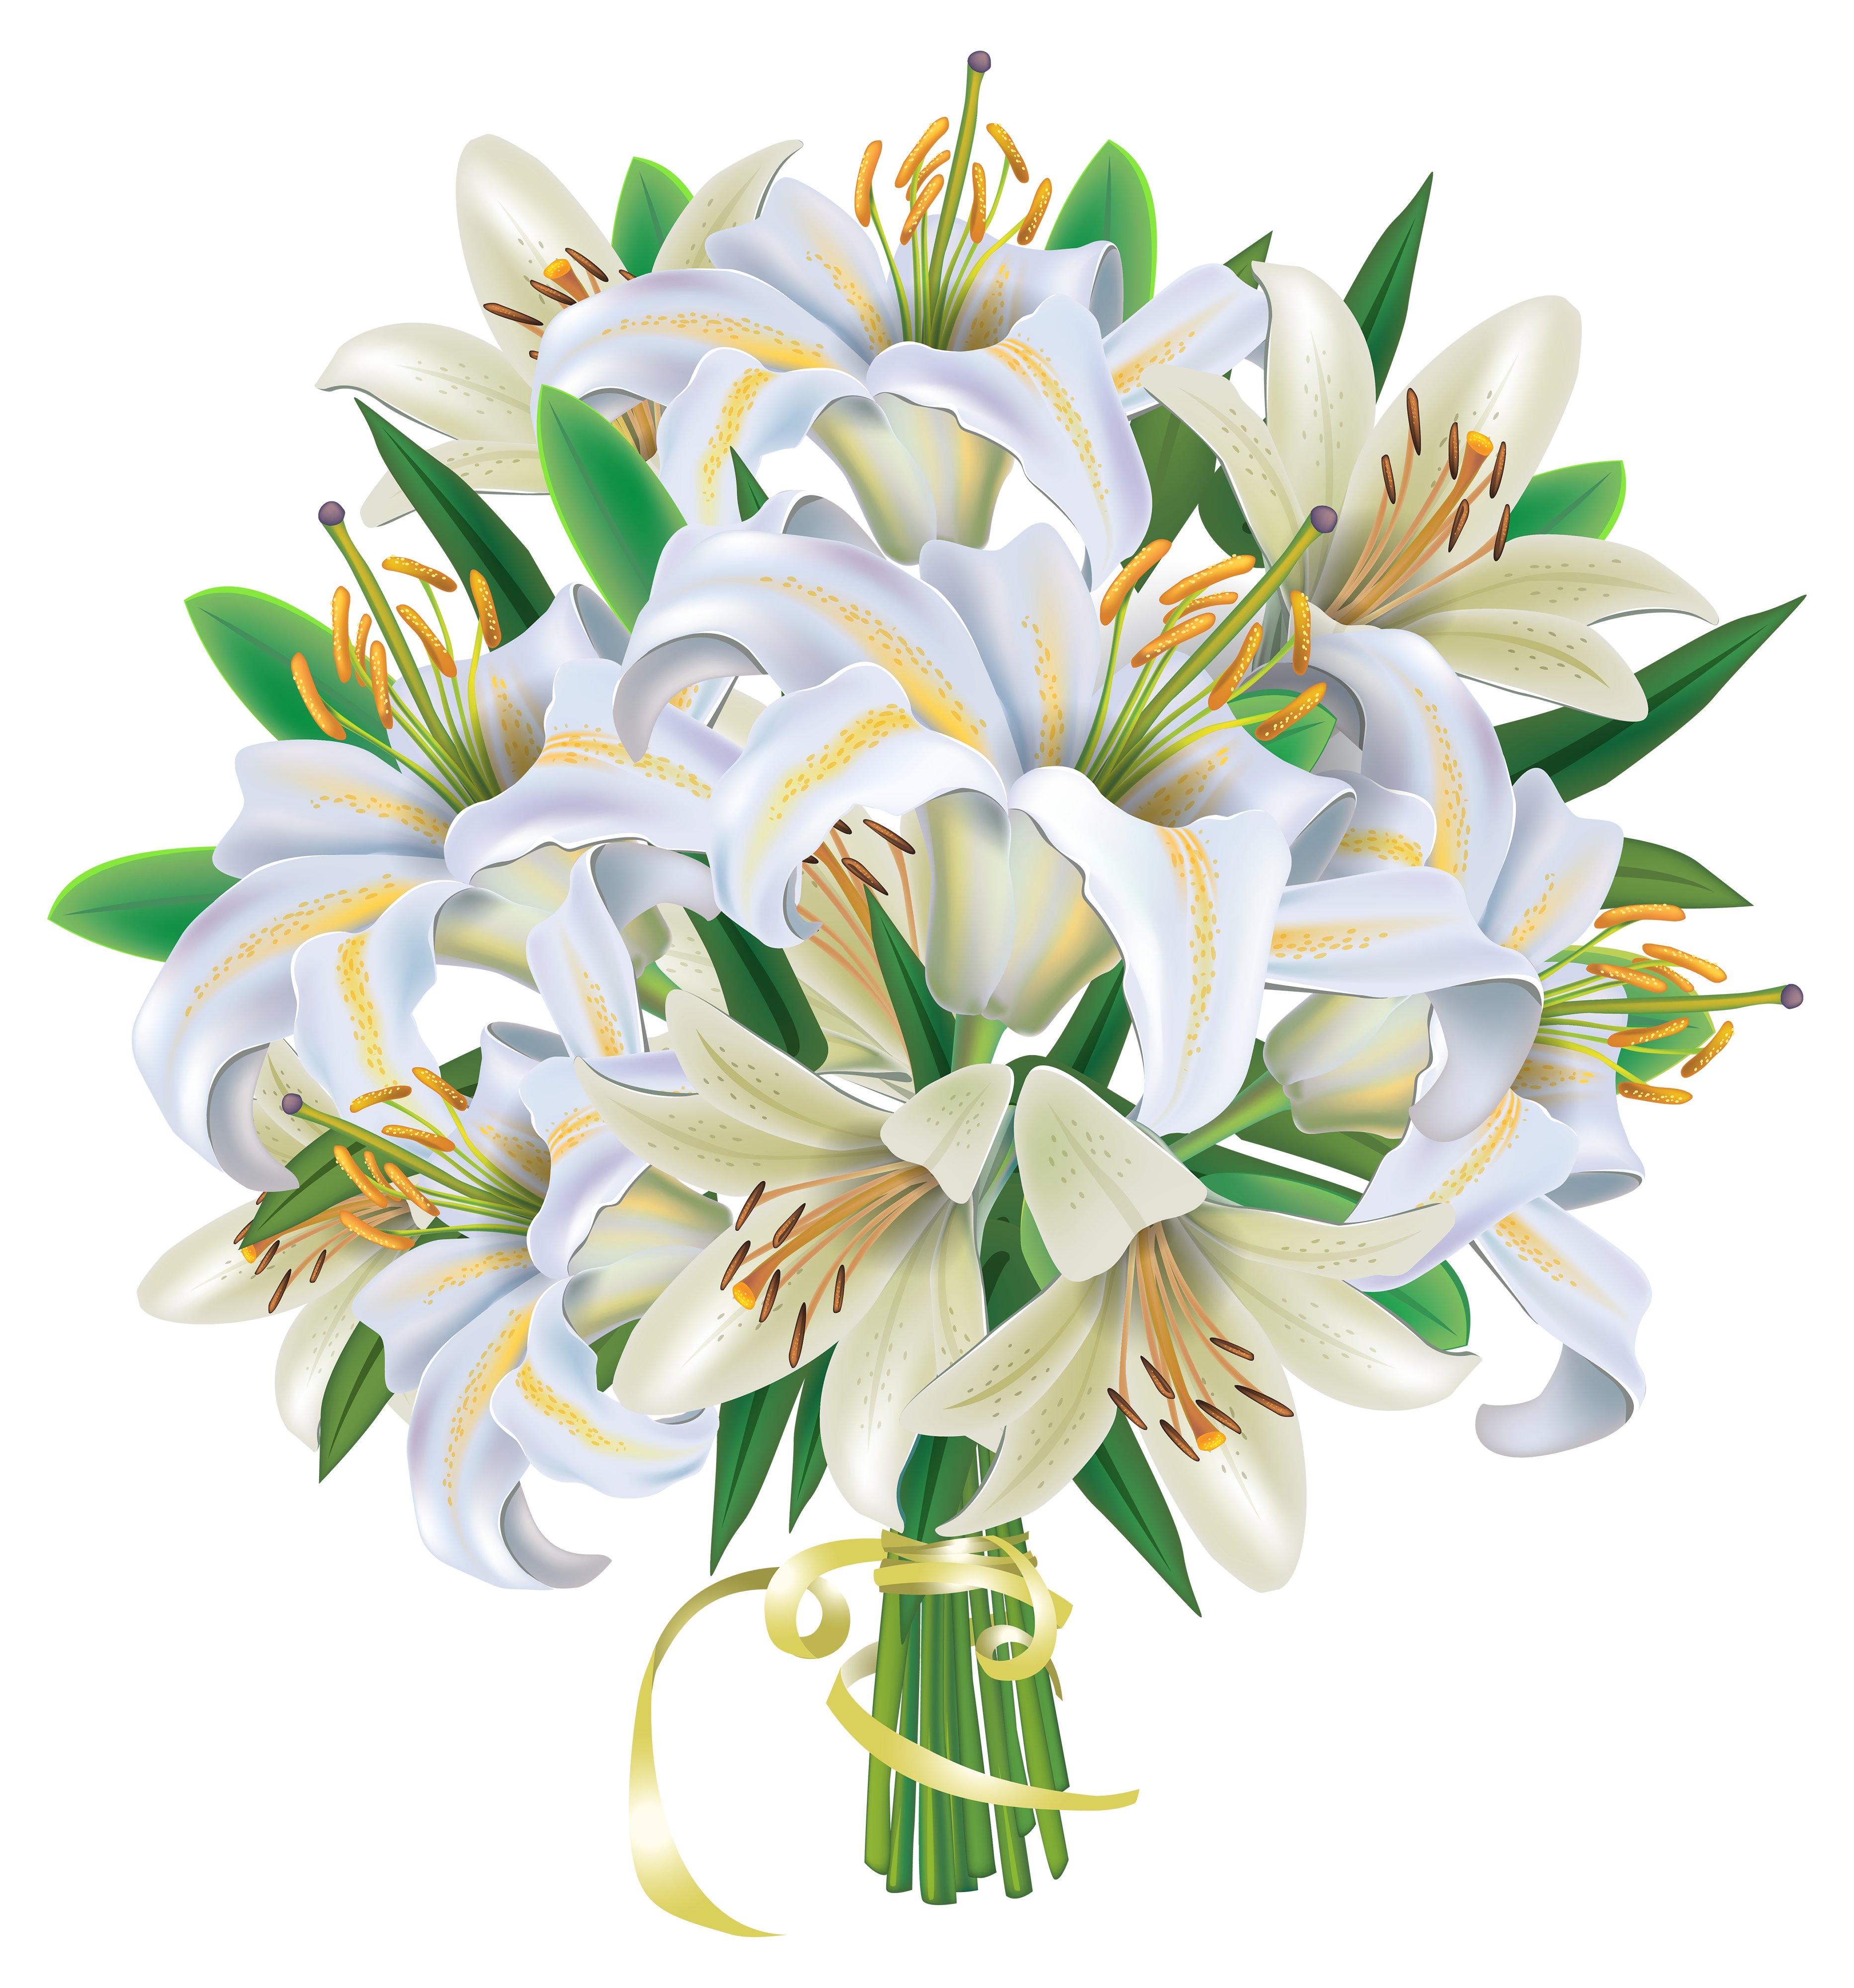 Lily transparent bouquet. White lilies flowers png